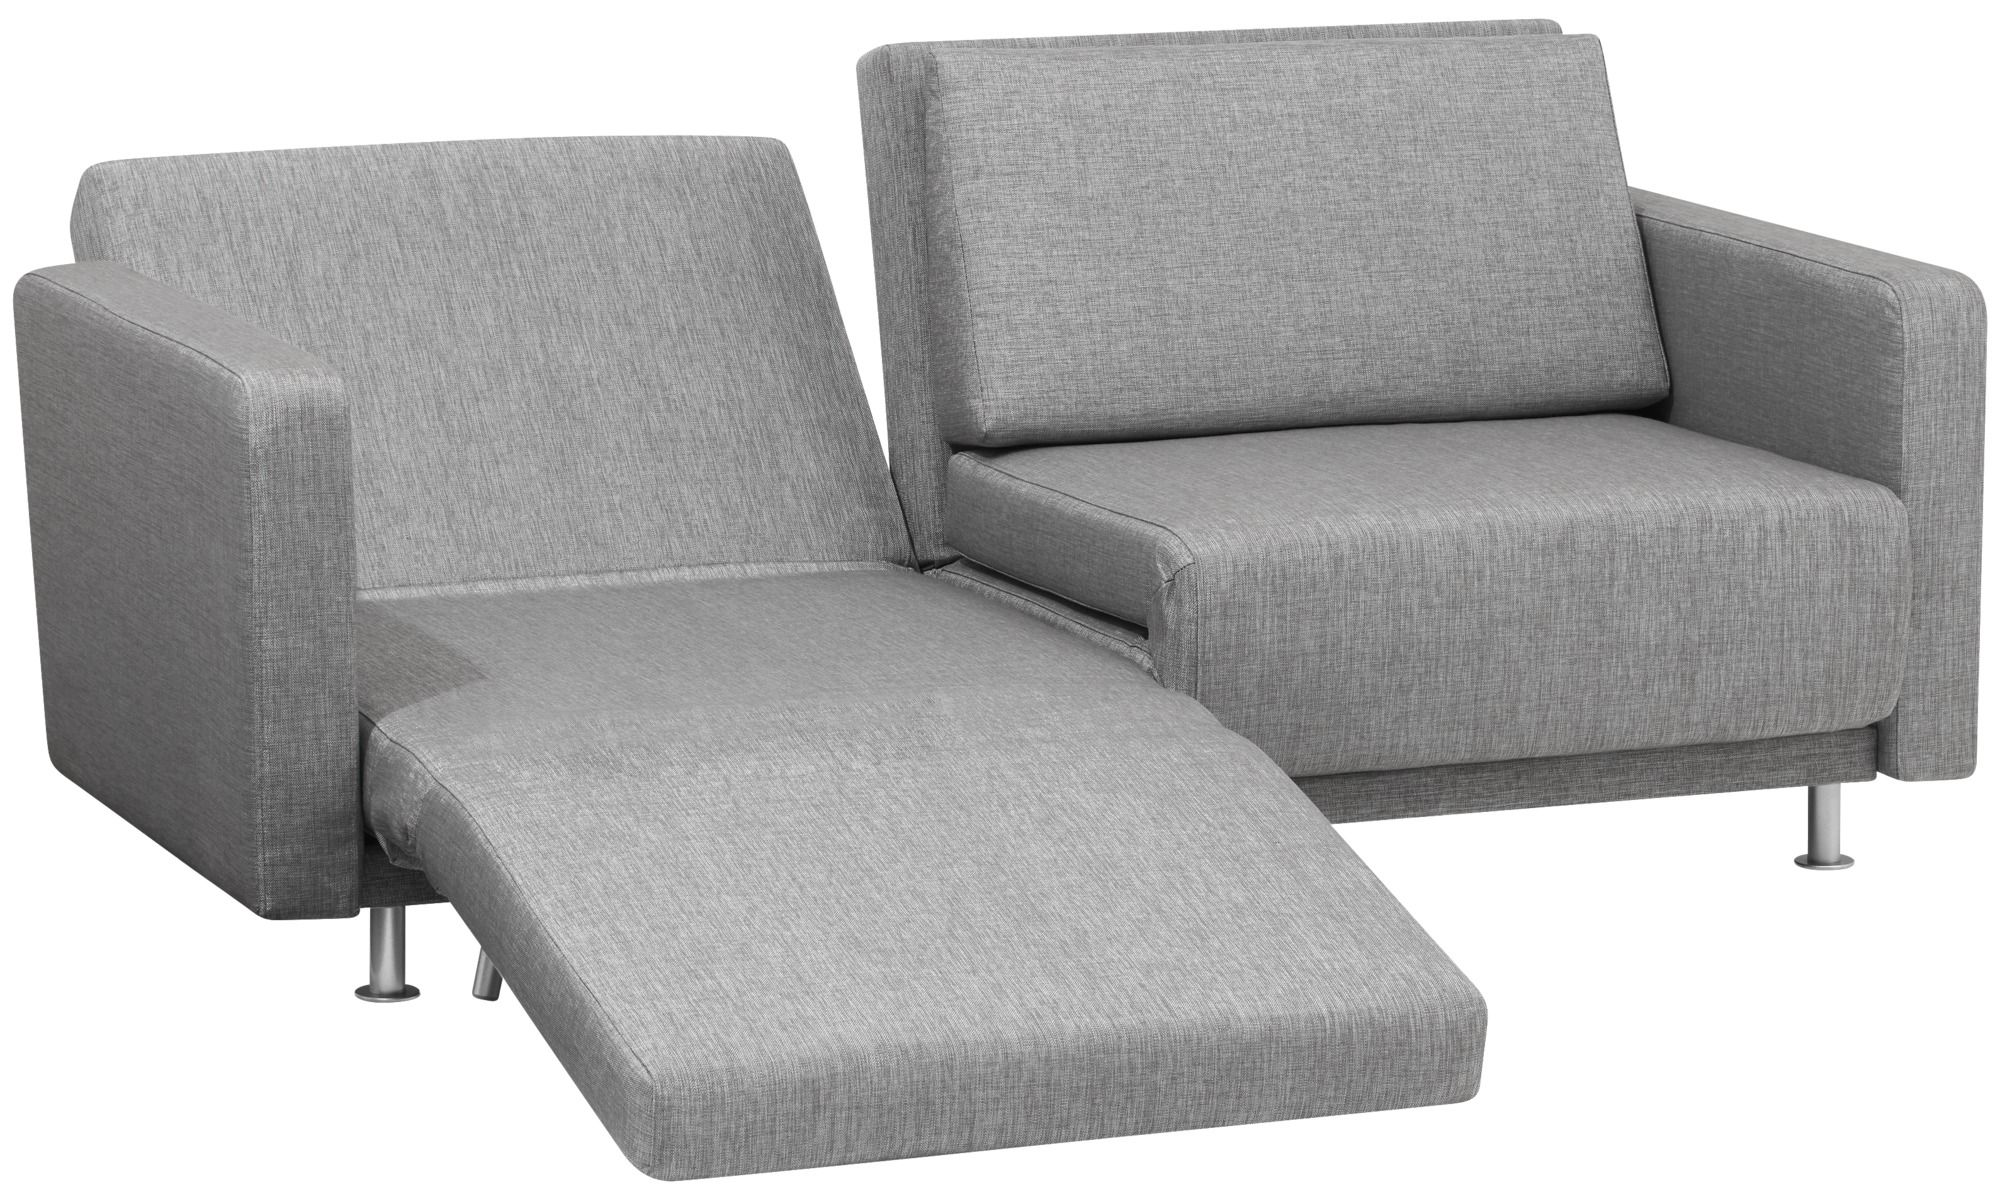 New Designs Melo 2 Sofa With Reclining And Sleeping Function Gray Fabric Sofa Bed Design Sofa Bed Modern Recliner Sofa